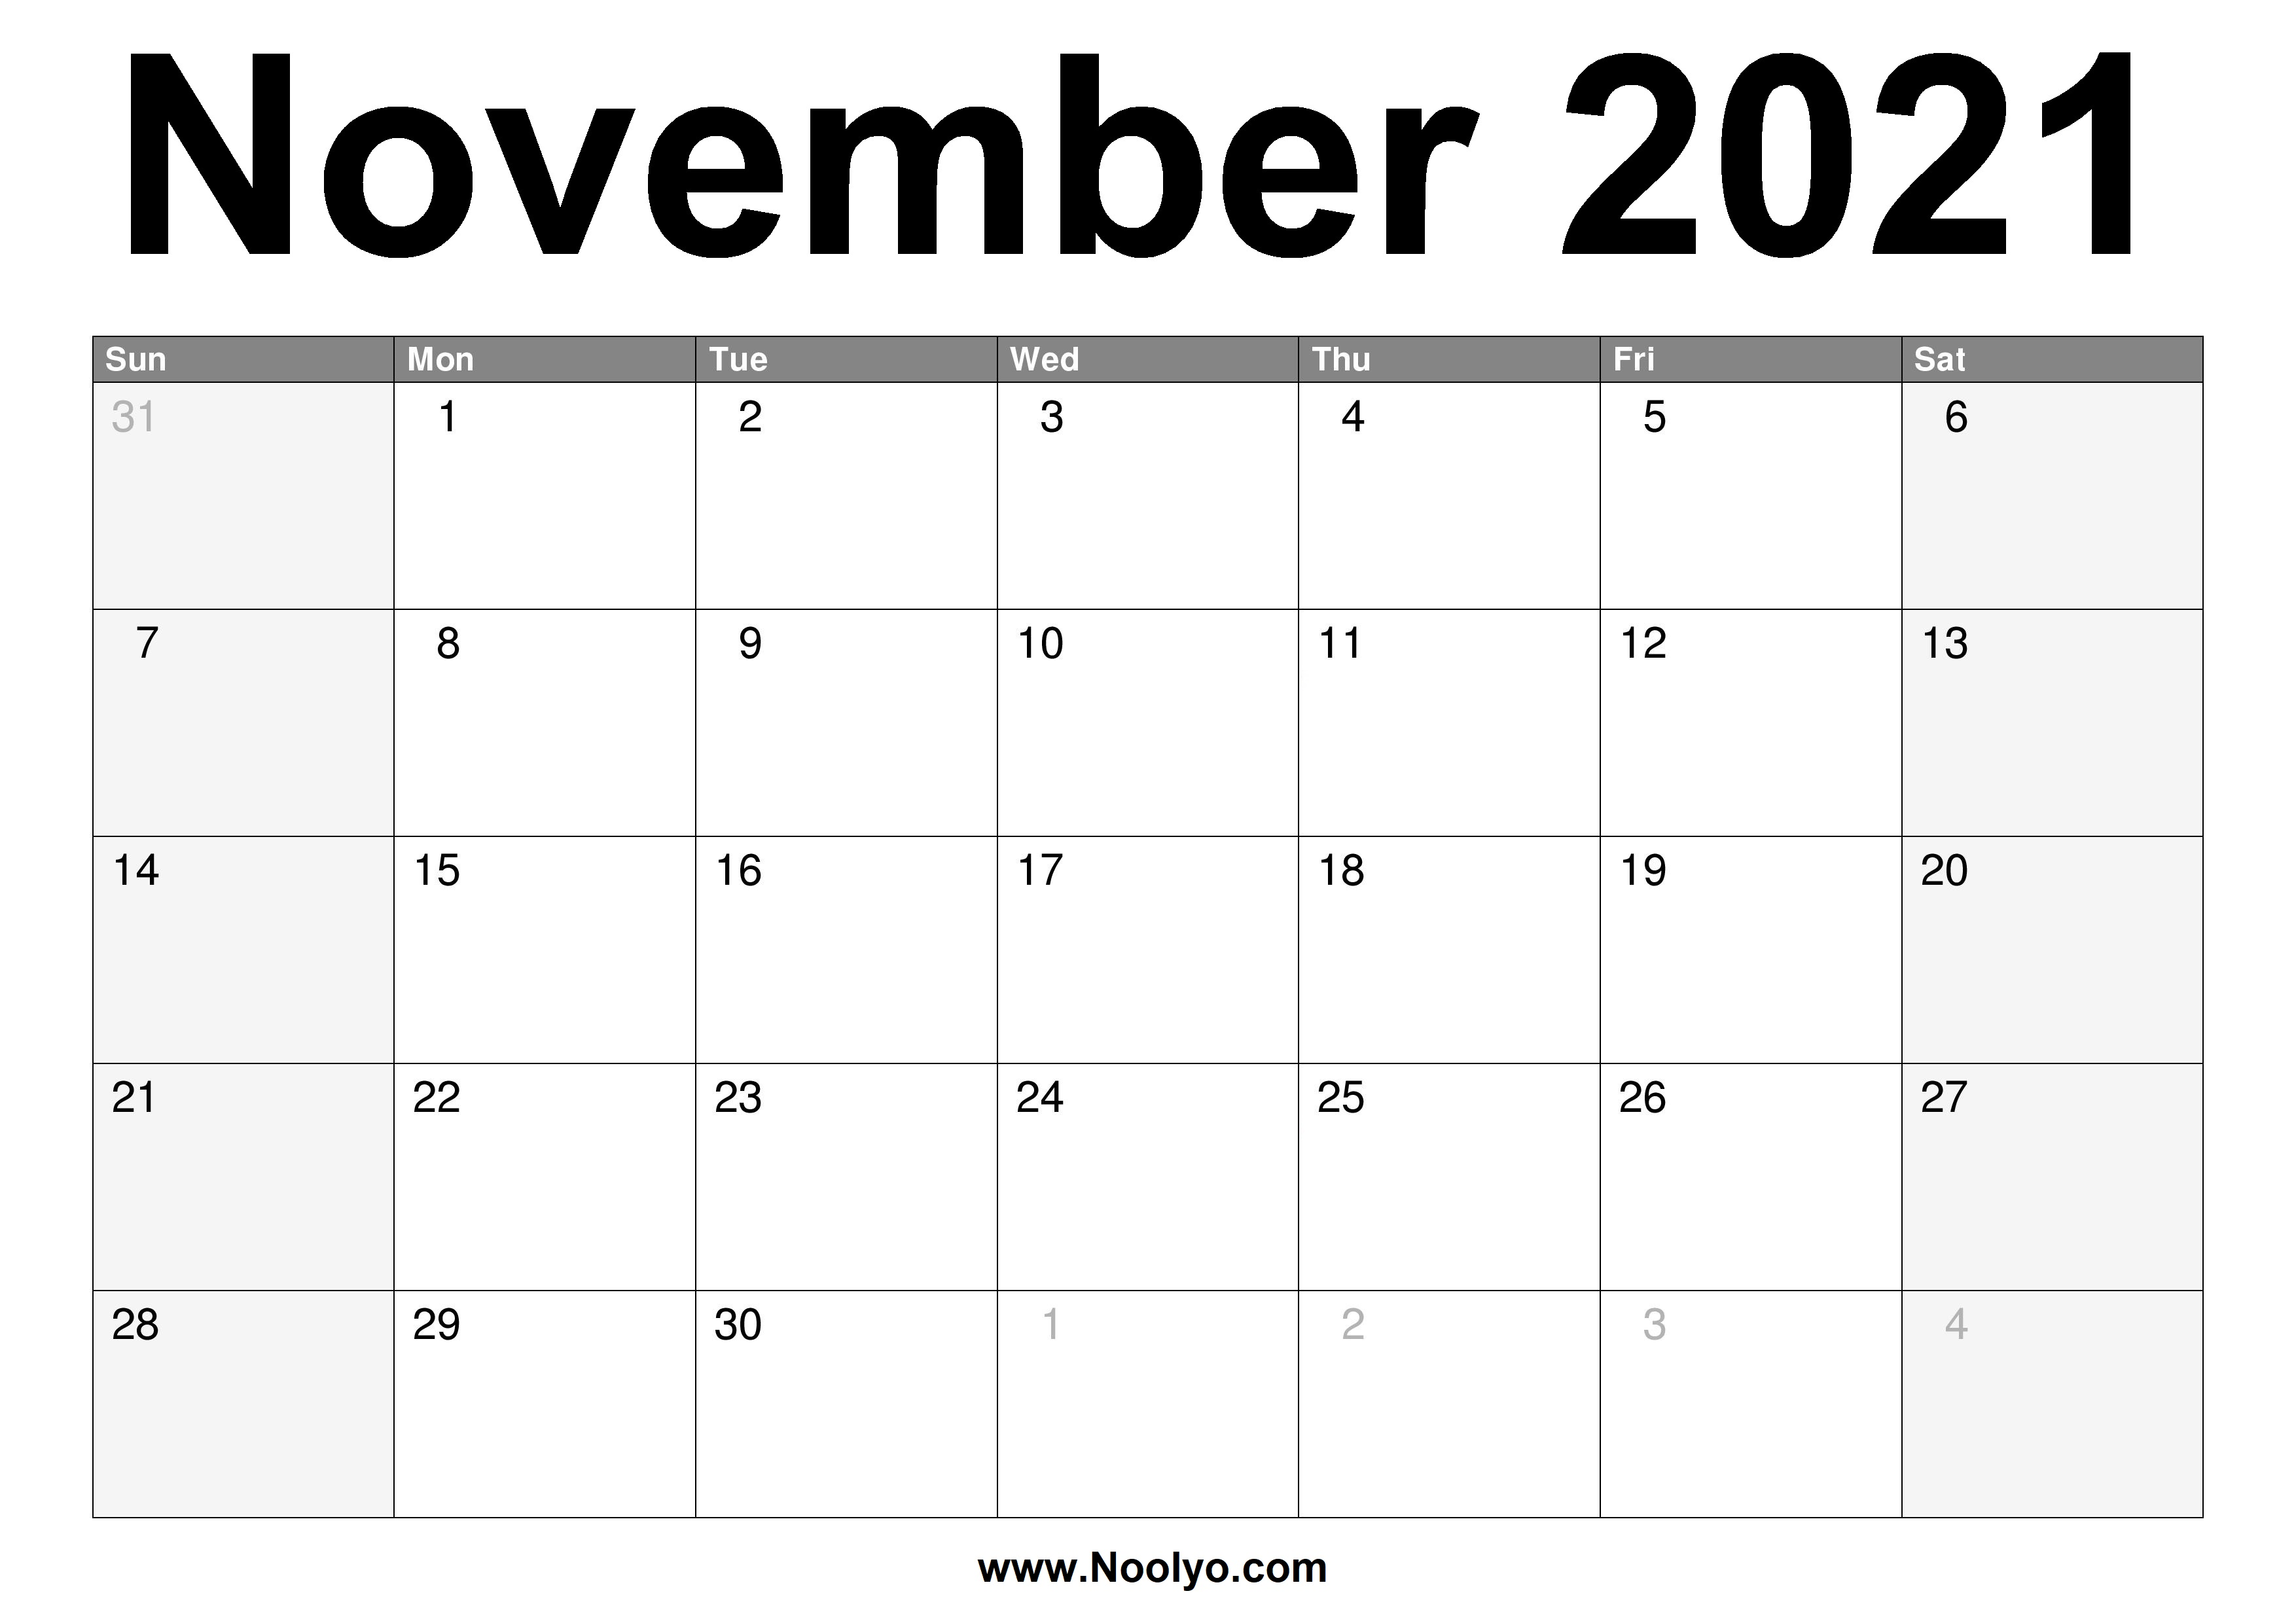 November 2021 Calendar Printable - Free Download - Noolyo.com